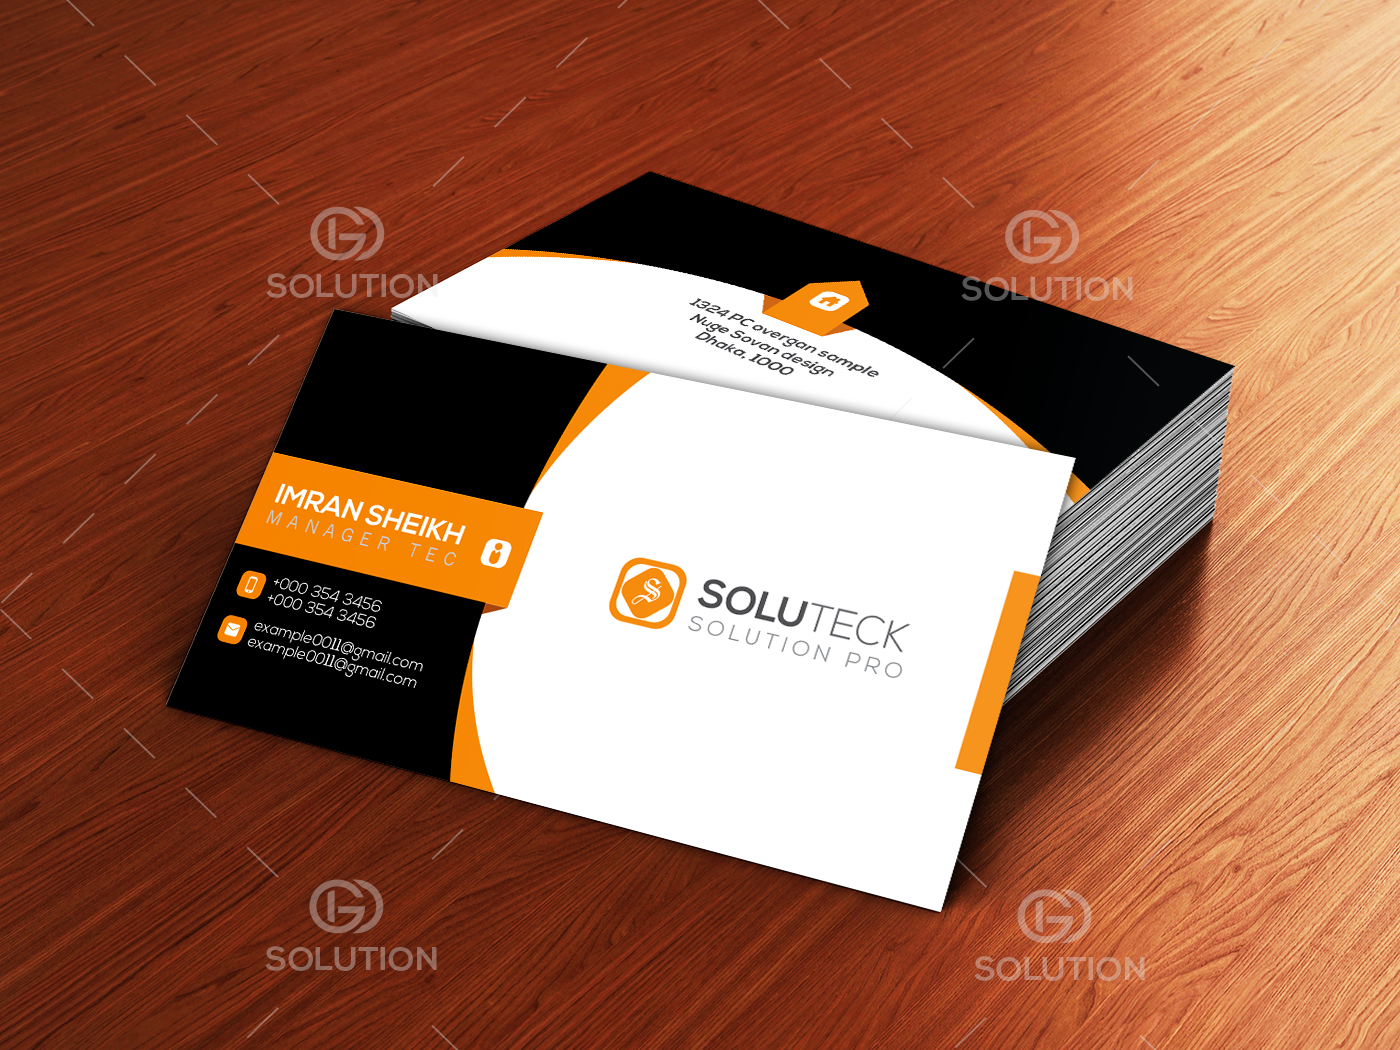 Awesome pdf business card gallery business card ideas etadamfo business card design free pdf gallery card design and card template alramifo Gallery